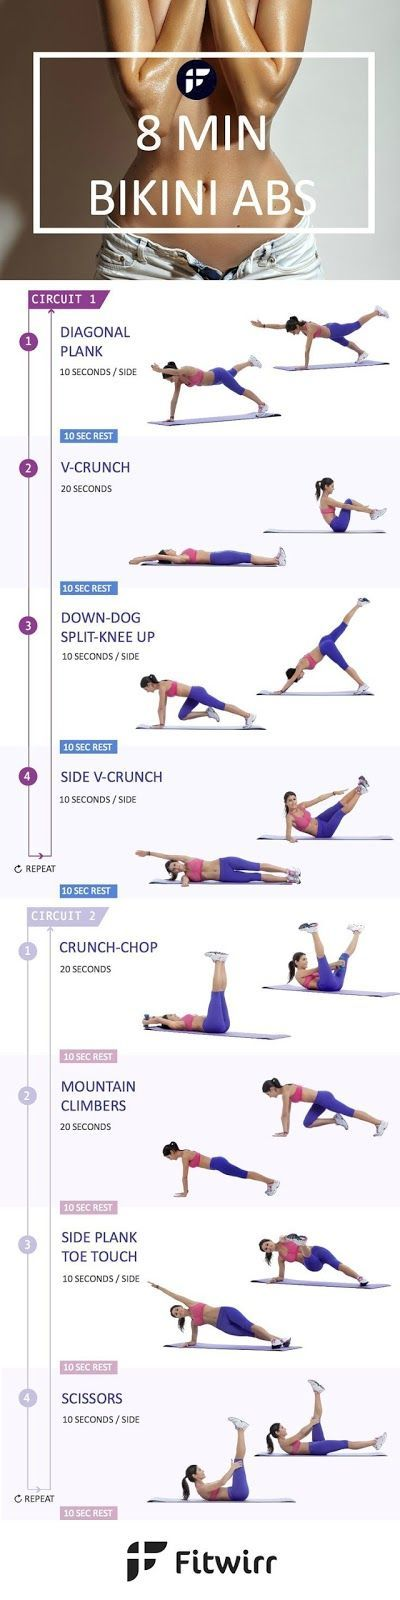 8 Minute Abs Workout - The Best Core Firming Abs Workout - Fitwirr